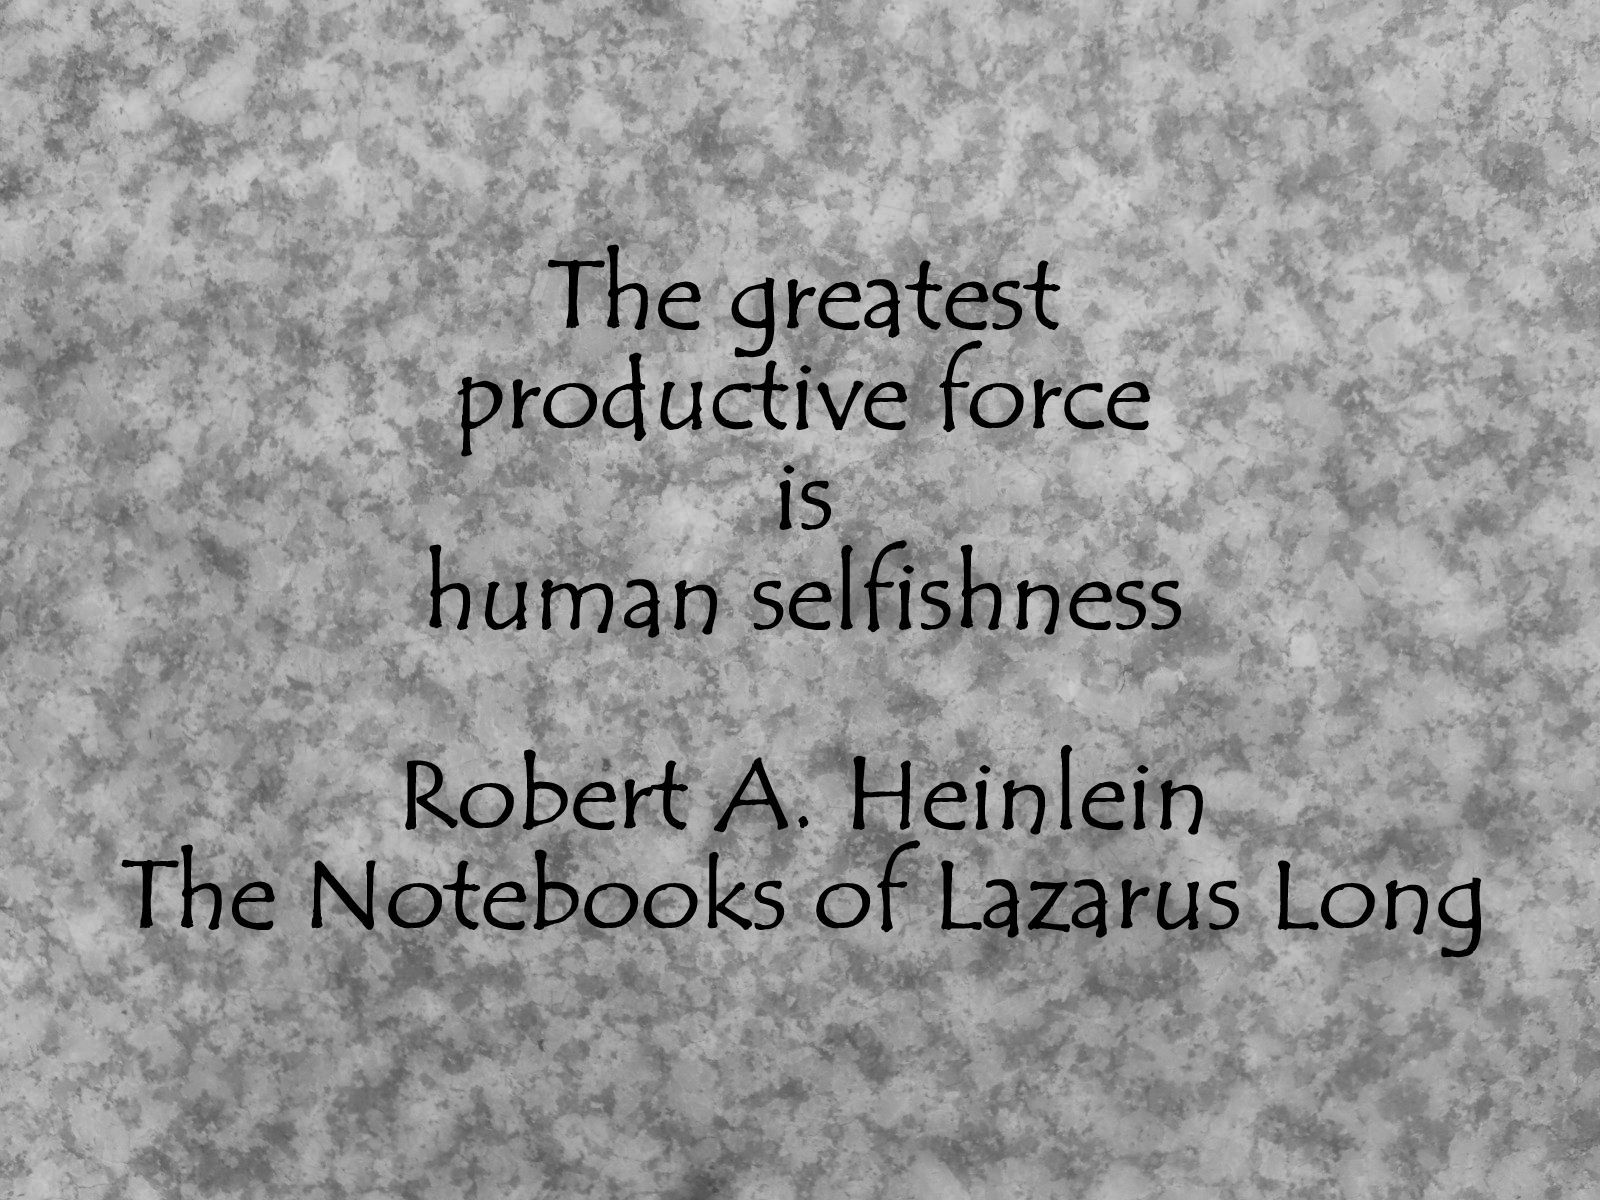 Robert Heinlein Quotes Mesmerizing 55 Best Robert Heinlein Images On Pinterest  Laptops Notebook And . Design Inspiration